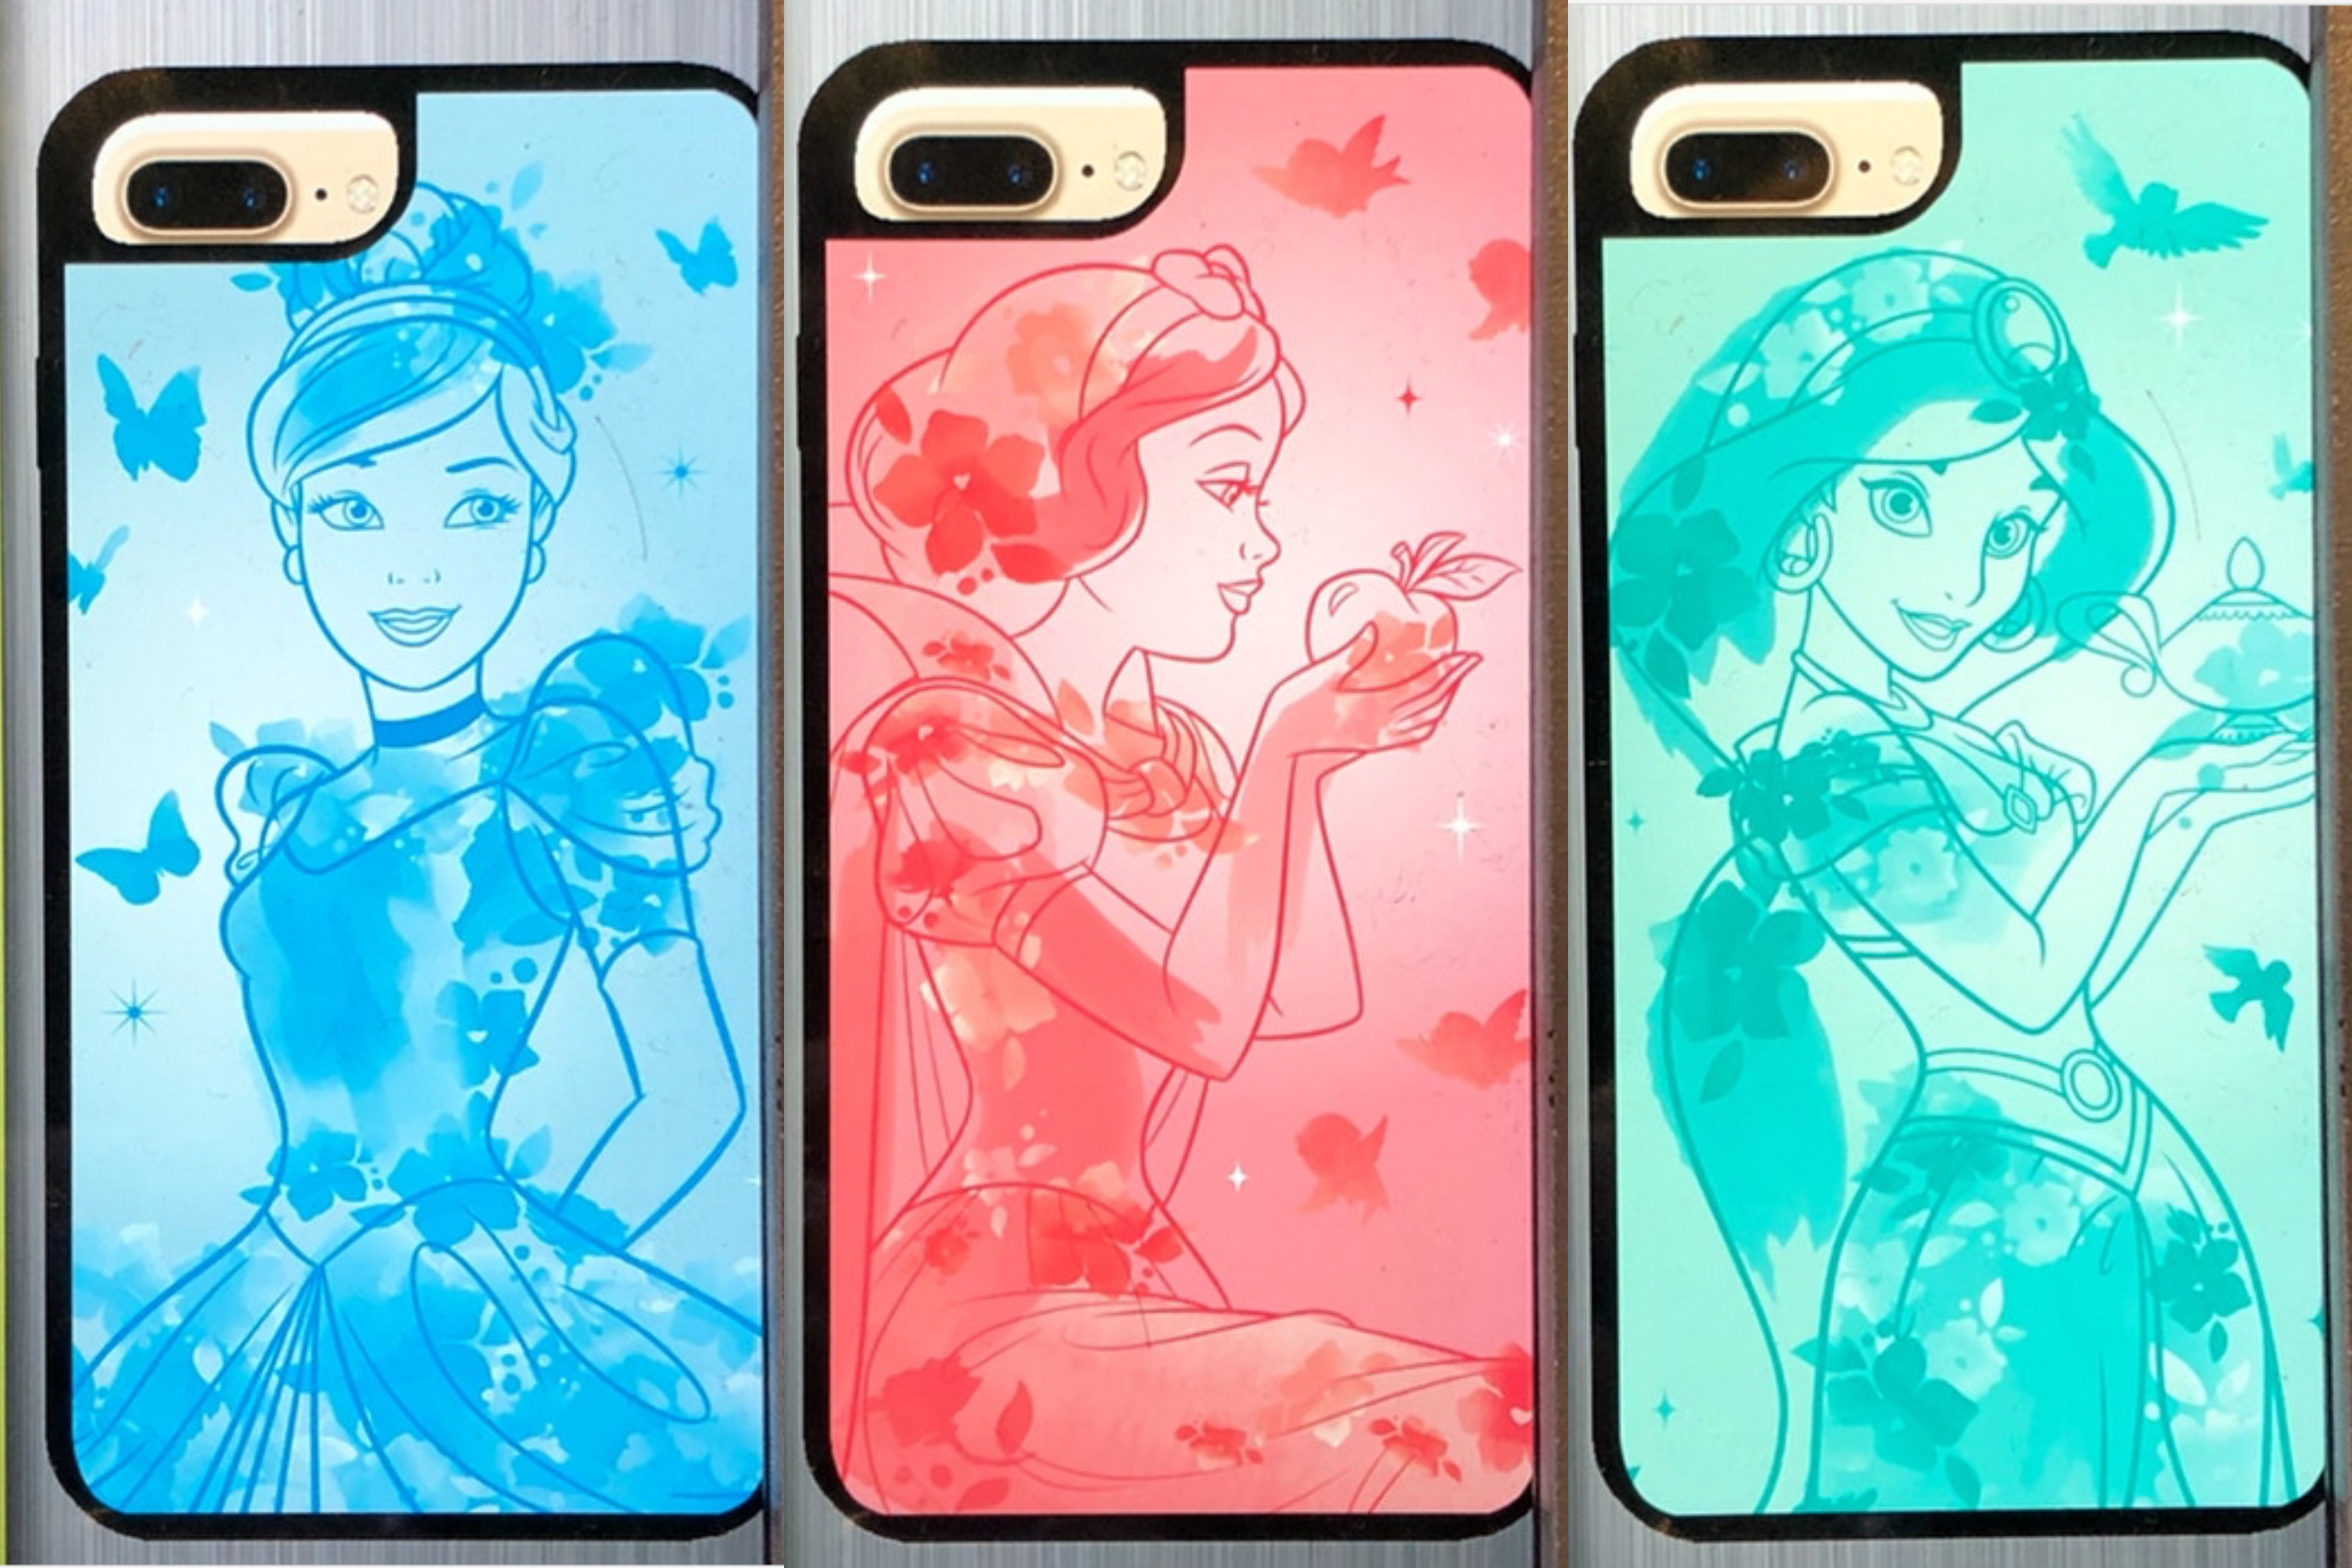 princess-d-tech-cases-01-25-2020.jpg